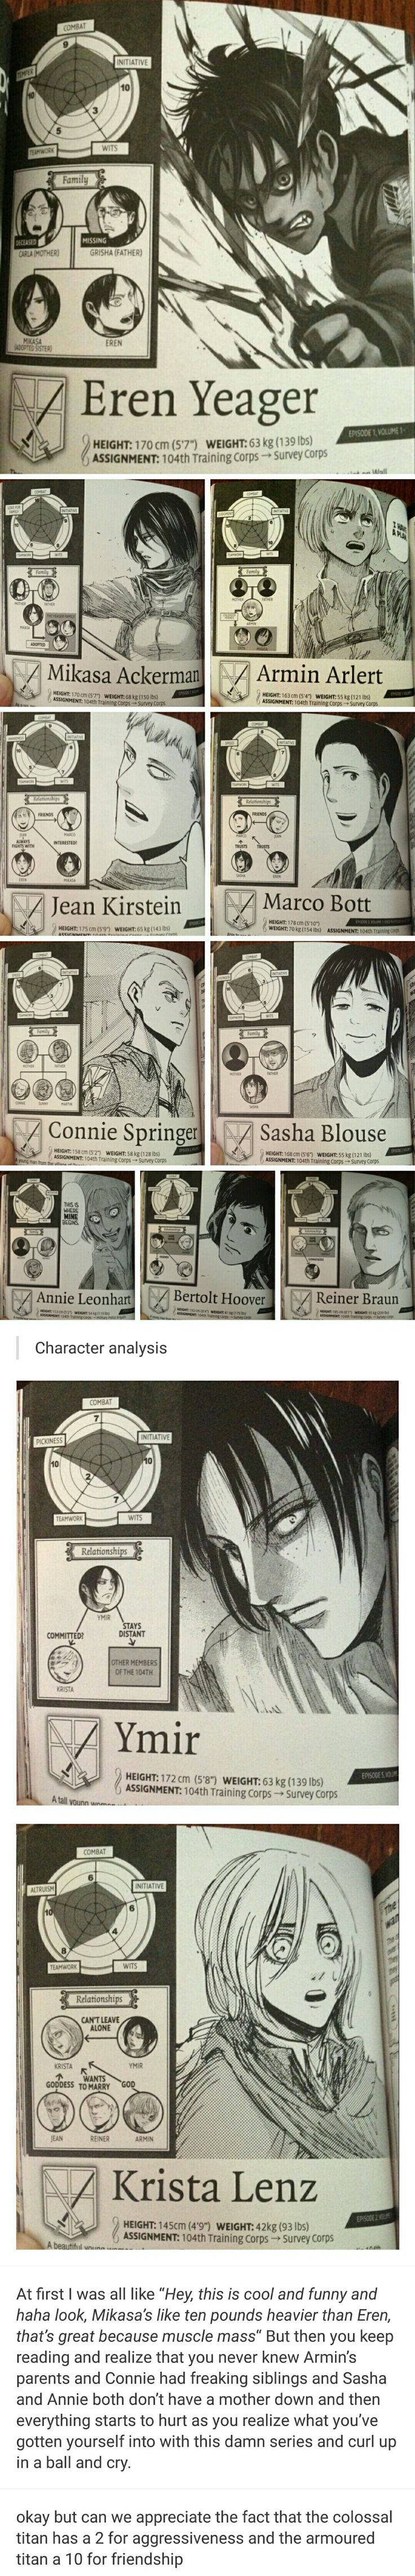 We'll just ignore the relationships part (or lack of) with some of these characters for shipping's sake, plus it's not entirely correct. For instance, as much as I hate Eremika, it doesn't say that Mikasa loves Eren.